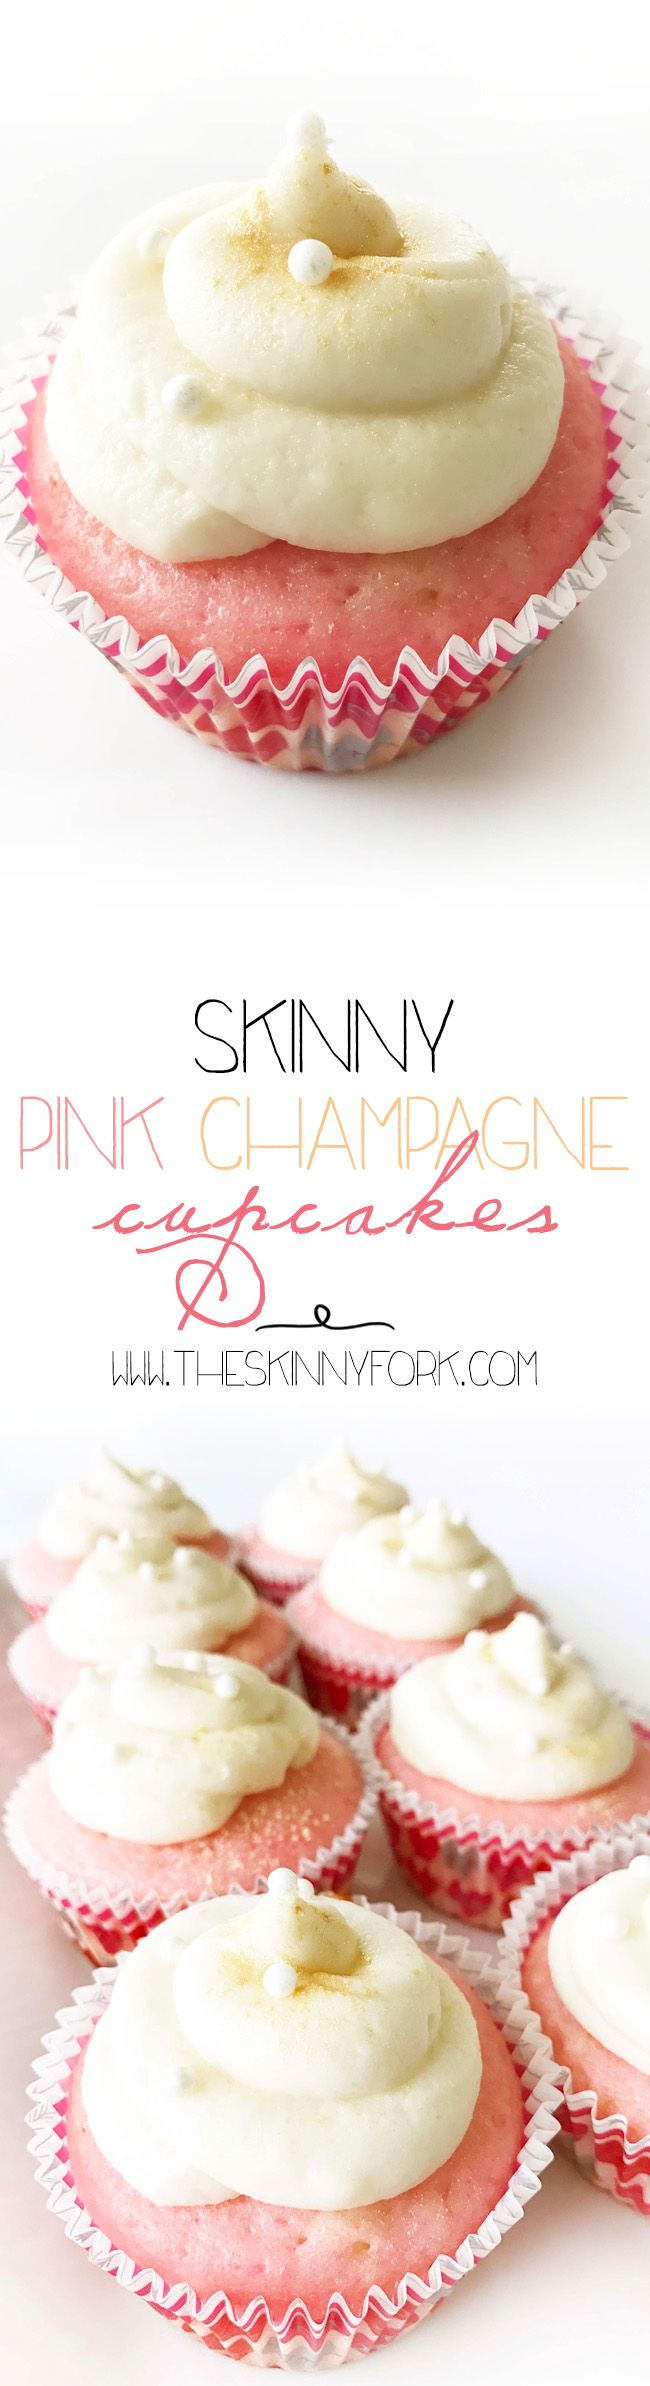 Skinny Pink Champagne Cupcakes! Just in time for Valentine's Day. These perfectly sweet and champagne infused cupcakes are just way cupid ordered for you and your valentine sweetheart. That's right. Champagne infused cupcakes AND frosting! TheSkinnyFork.com | Skinny & Healthy Recipes